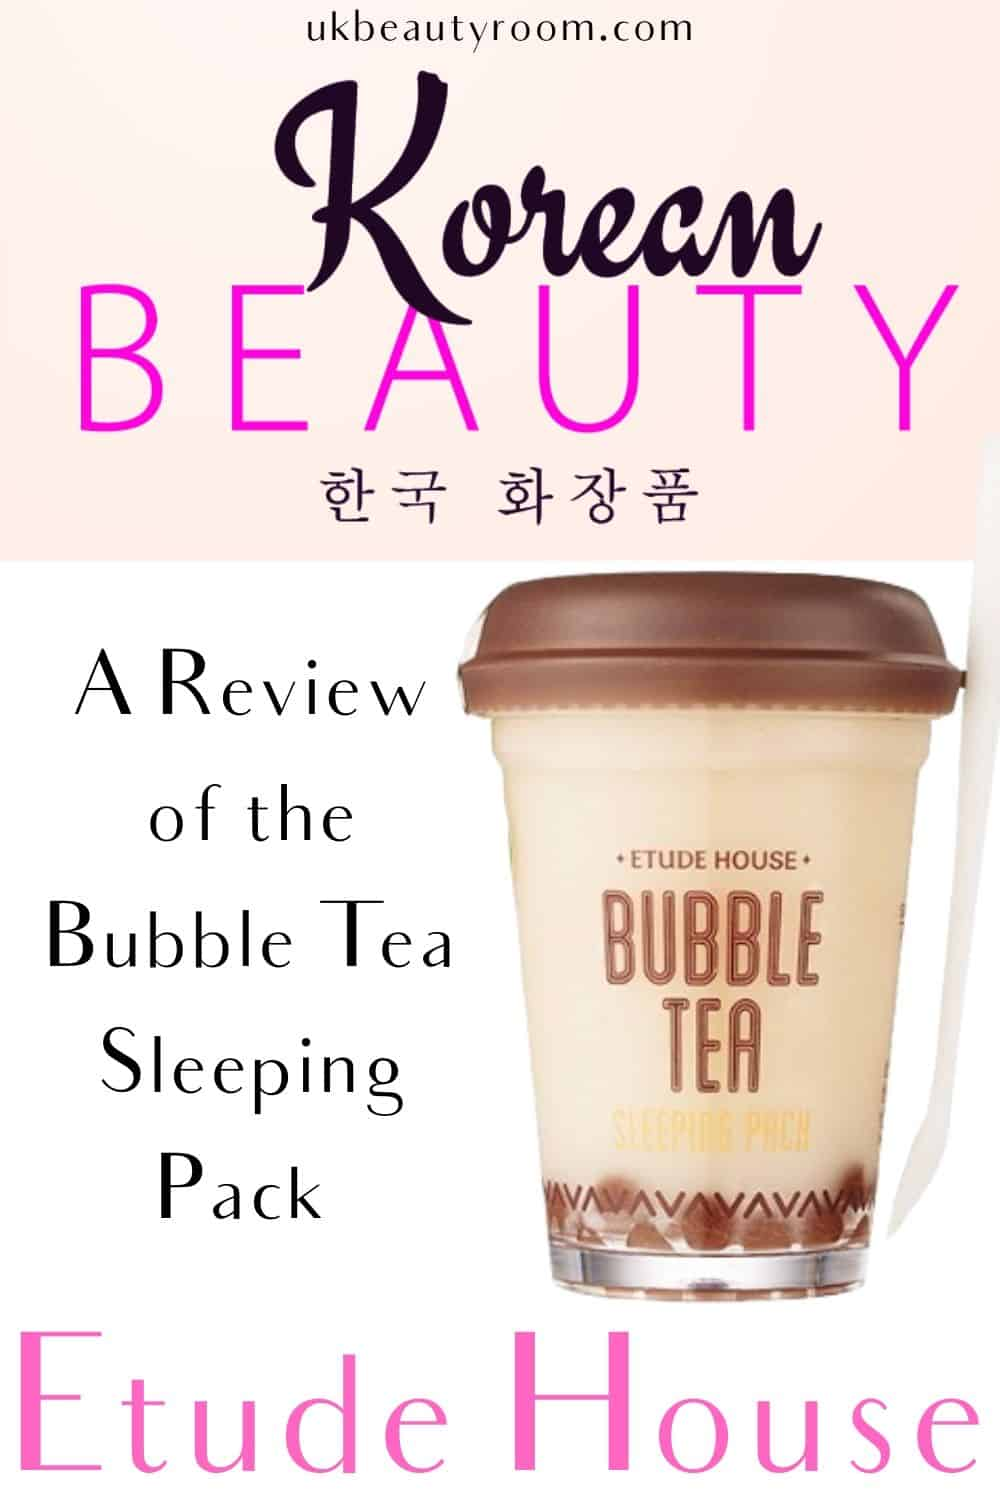 A review of the Etude House Bubble Tea Sleeping Pack which is a popular skincare product in Korea.  Korean women use sleeping packs once or twice a week as the final stage of their night-time skincare routine.